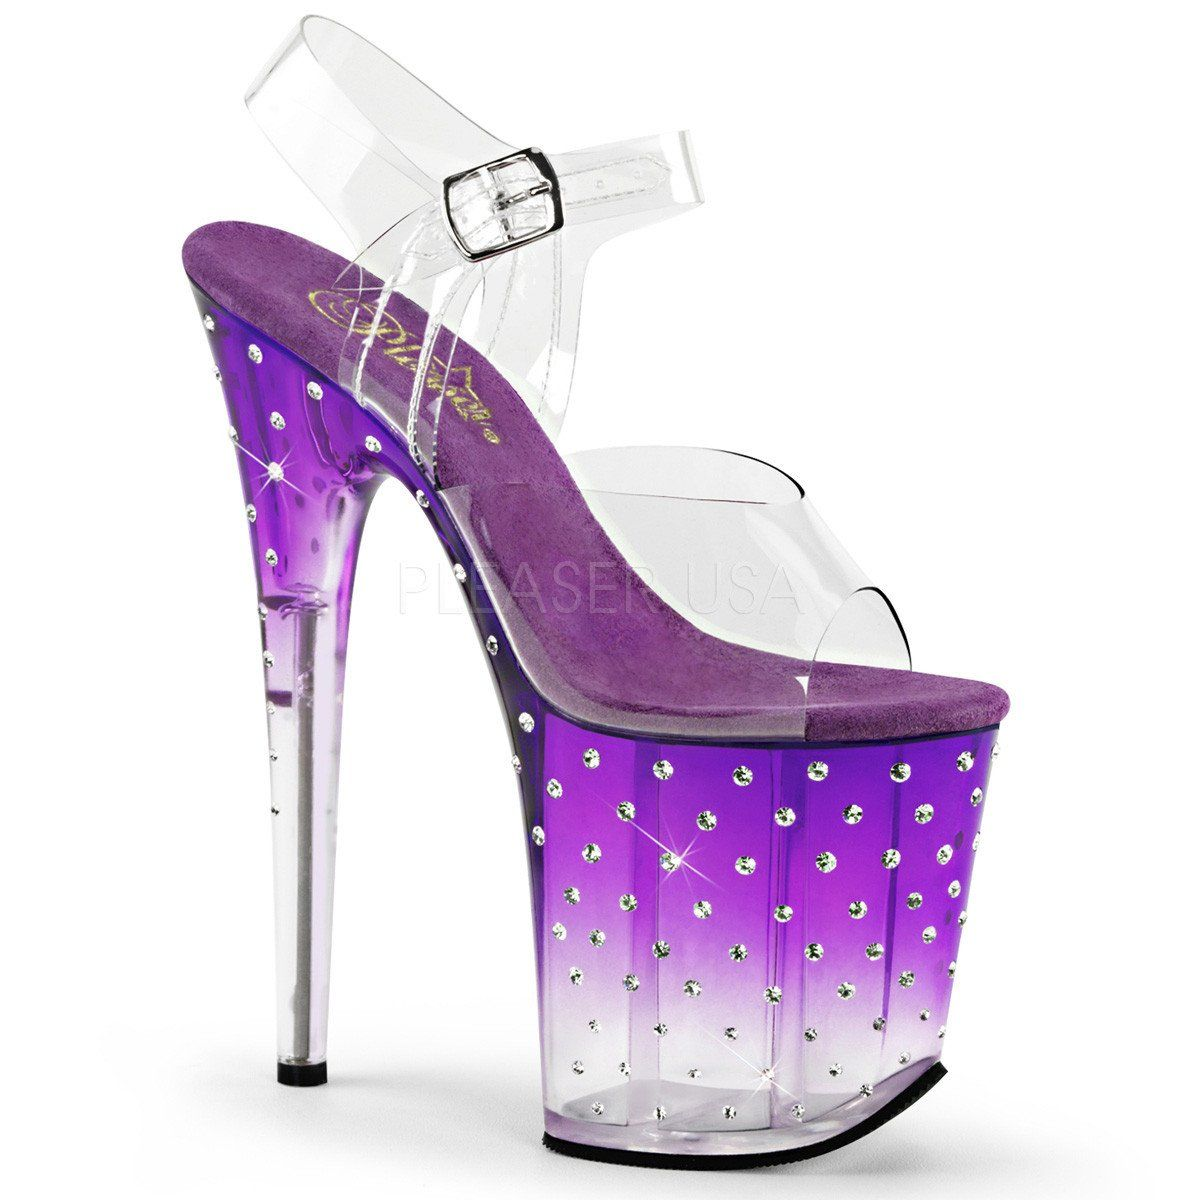 f0efc70f4b4 High heel platform sandals with colorful ombre platform and multi-sized Rhinestone  studs. These sandals have a clear upper with adjustable ankle strap and ...